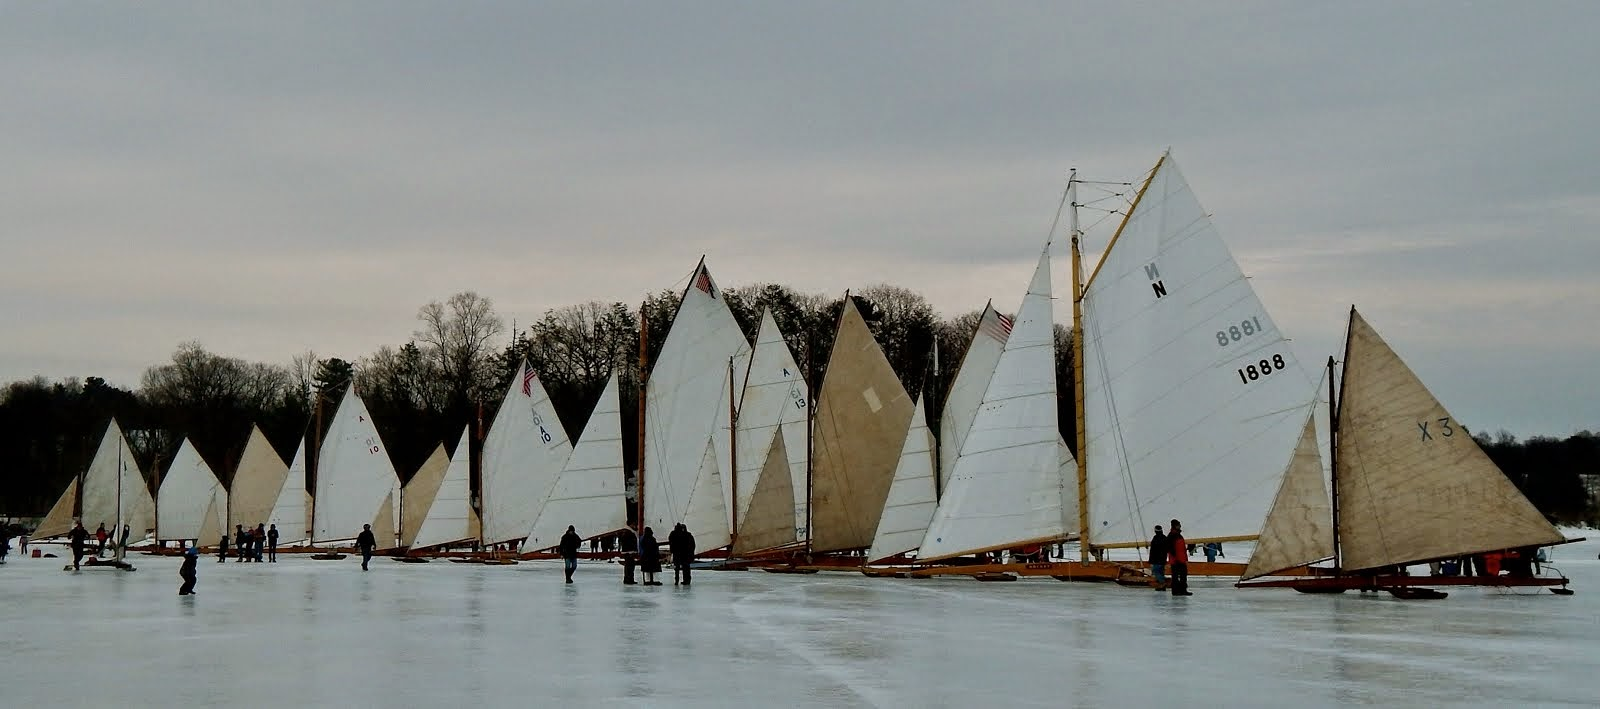 Line up of the iceboat fleet, off Rokeby, Barrytown-on-Hudson, NY, March 2014